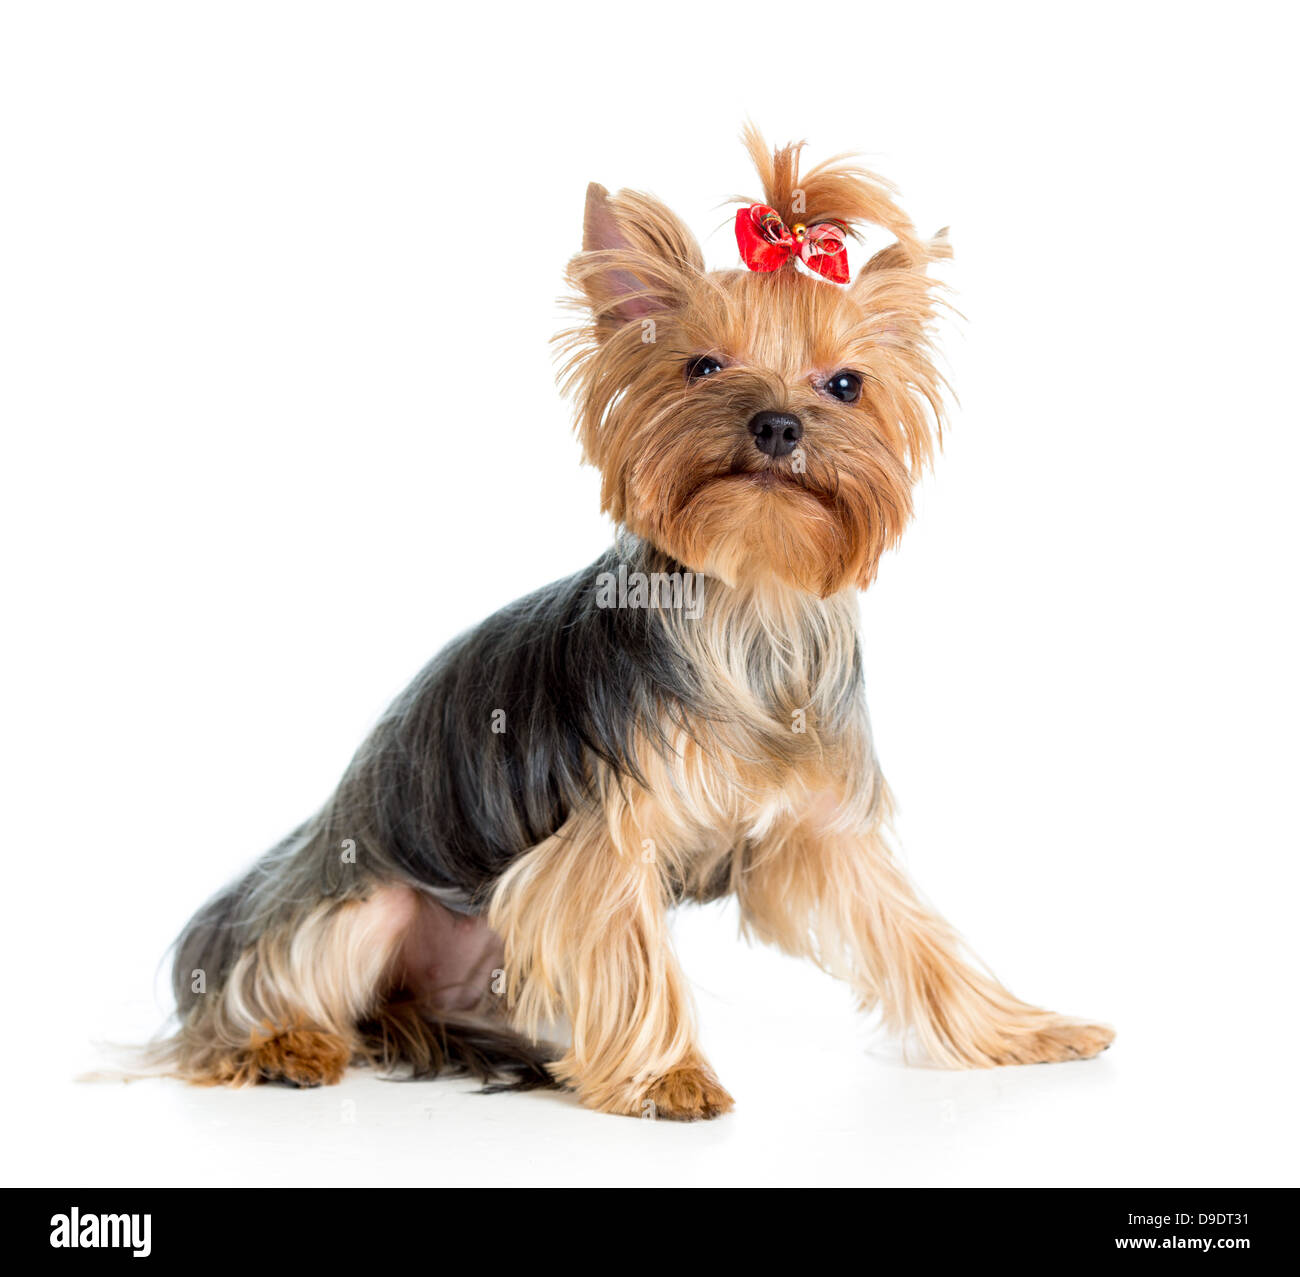 puppy yorkshire terrier isolated on white background - Stock Image